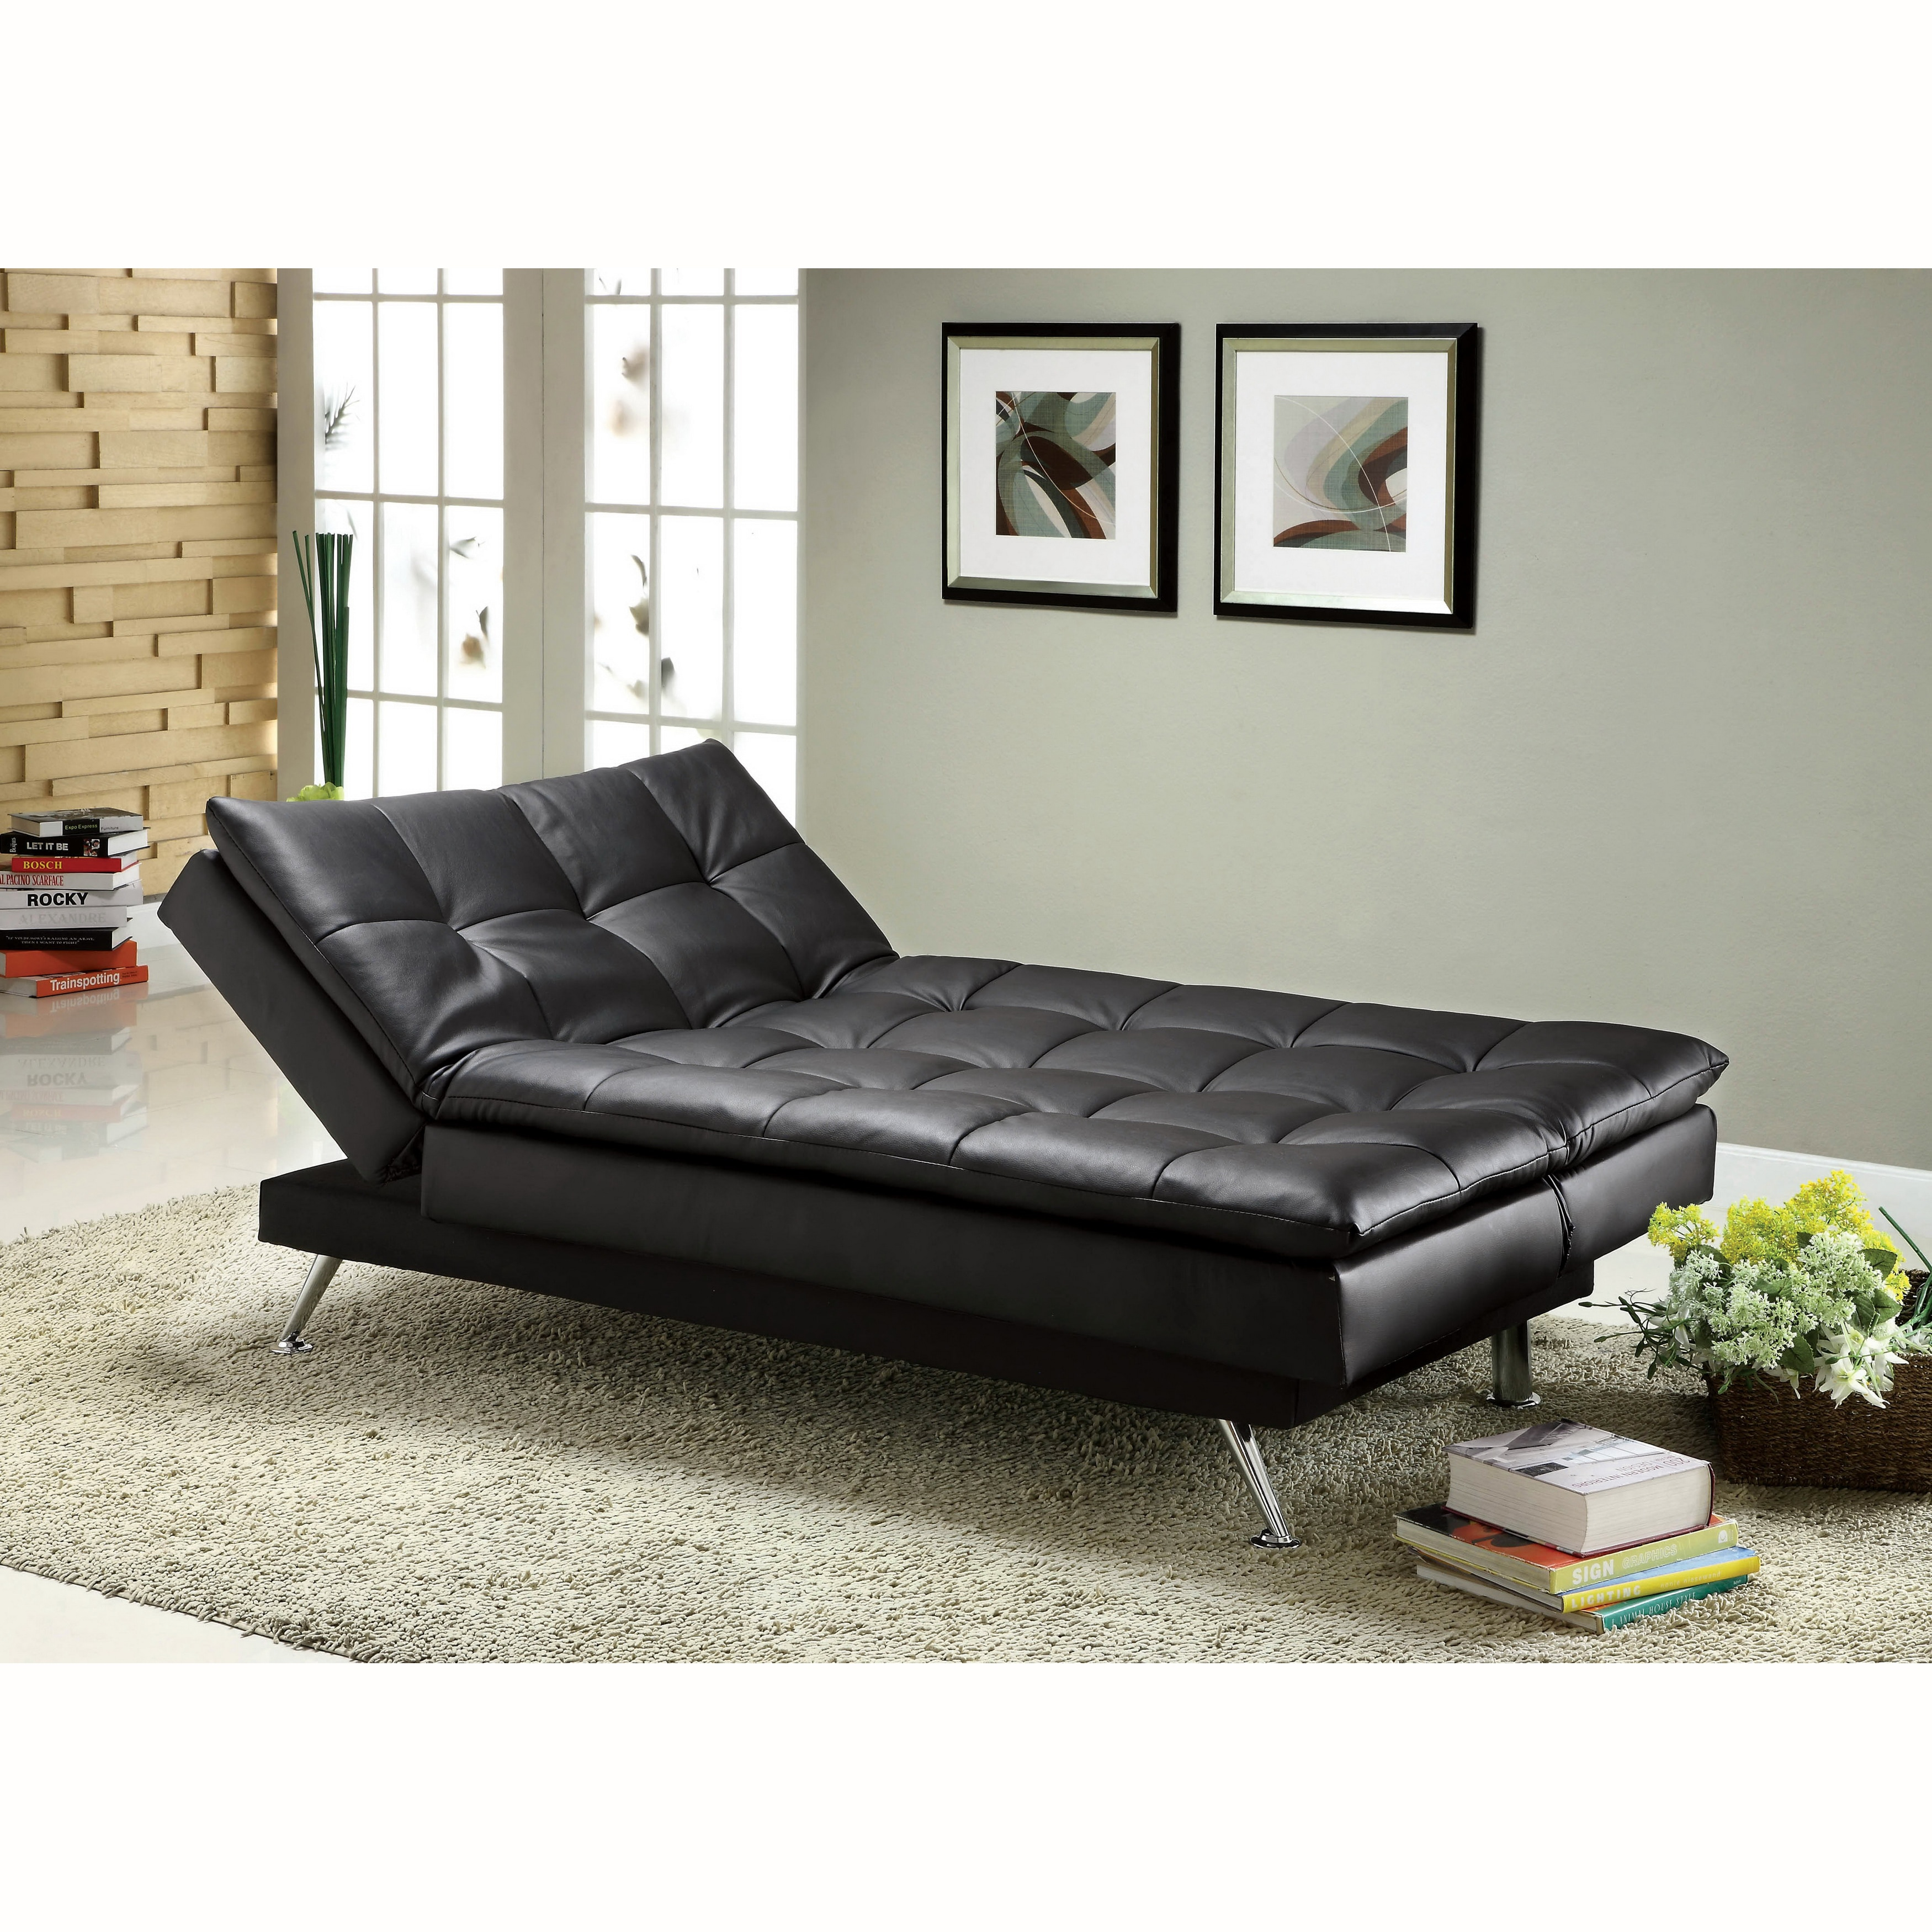 Excellent Furniture Of America Stabler Comfortable Black Futon Sofa Bed Beatyapartments Chair Design Images Beatyapartmentscom